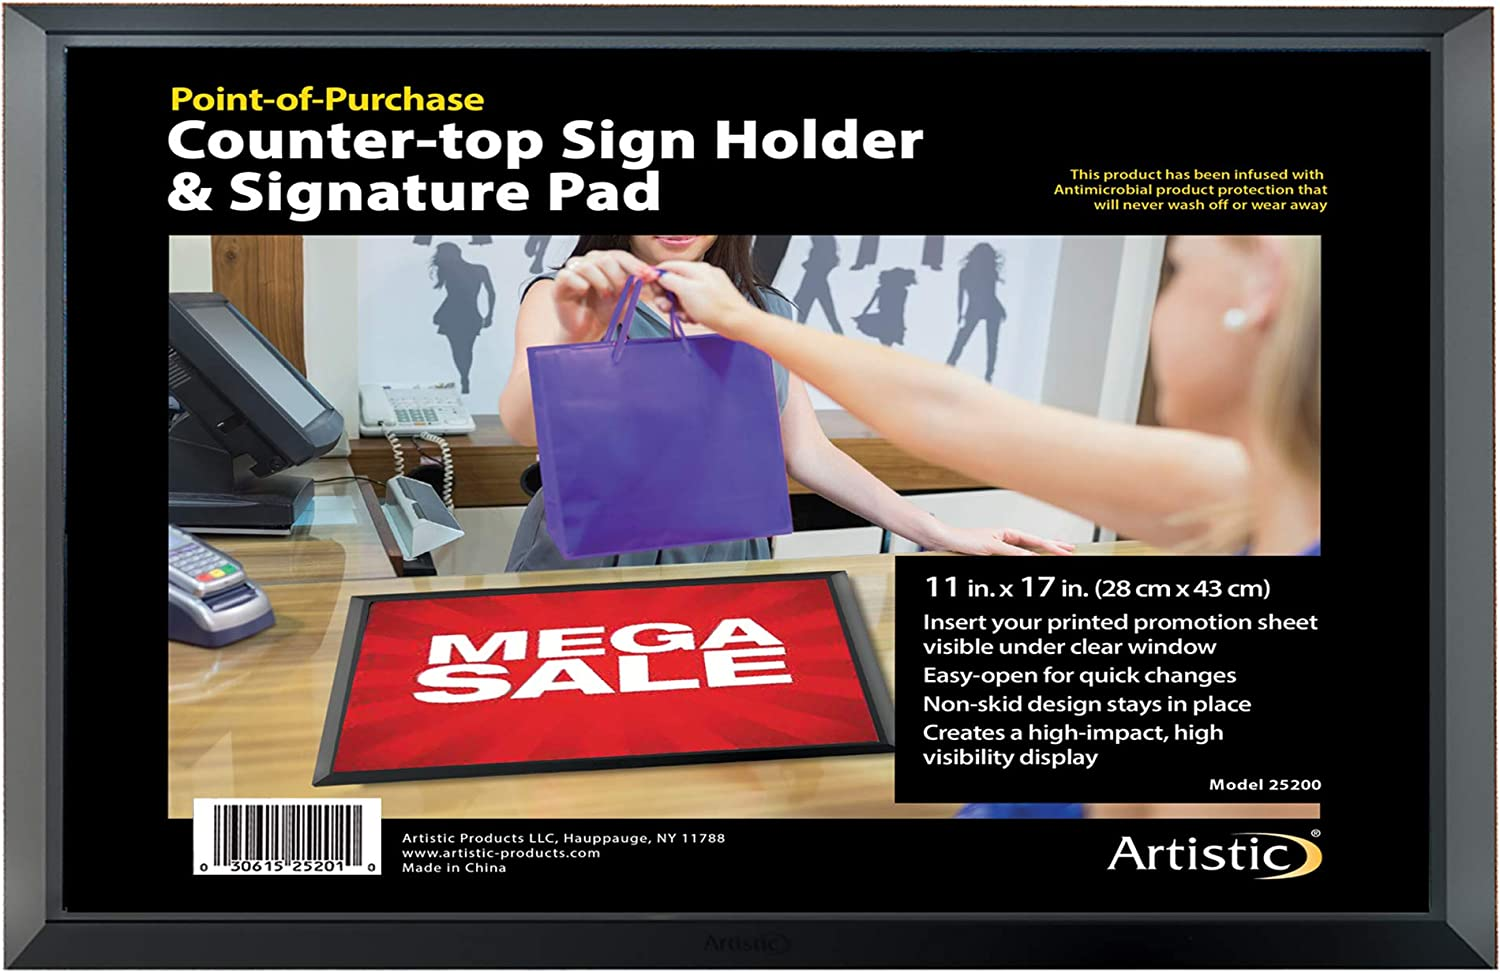 """Artistic Antimicrobial Non-Skid Retail Counter Top Mat, Lift Top Advertising Sign Holder & Signature Pad, 13"""" x 19"""", Black Frame"""